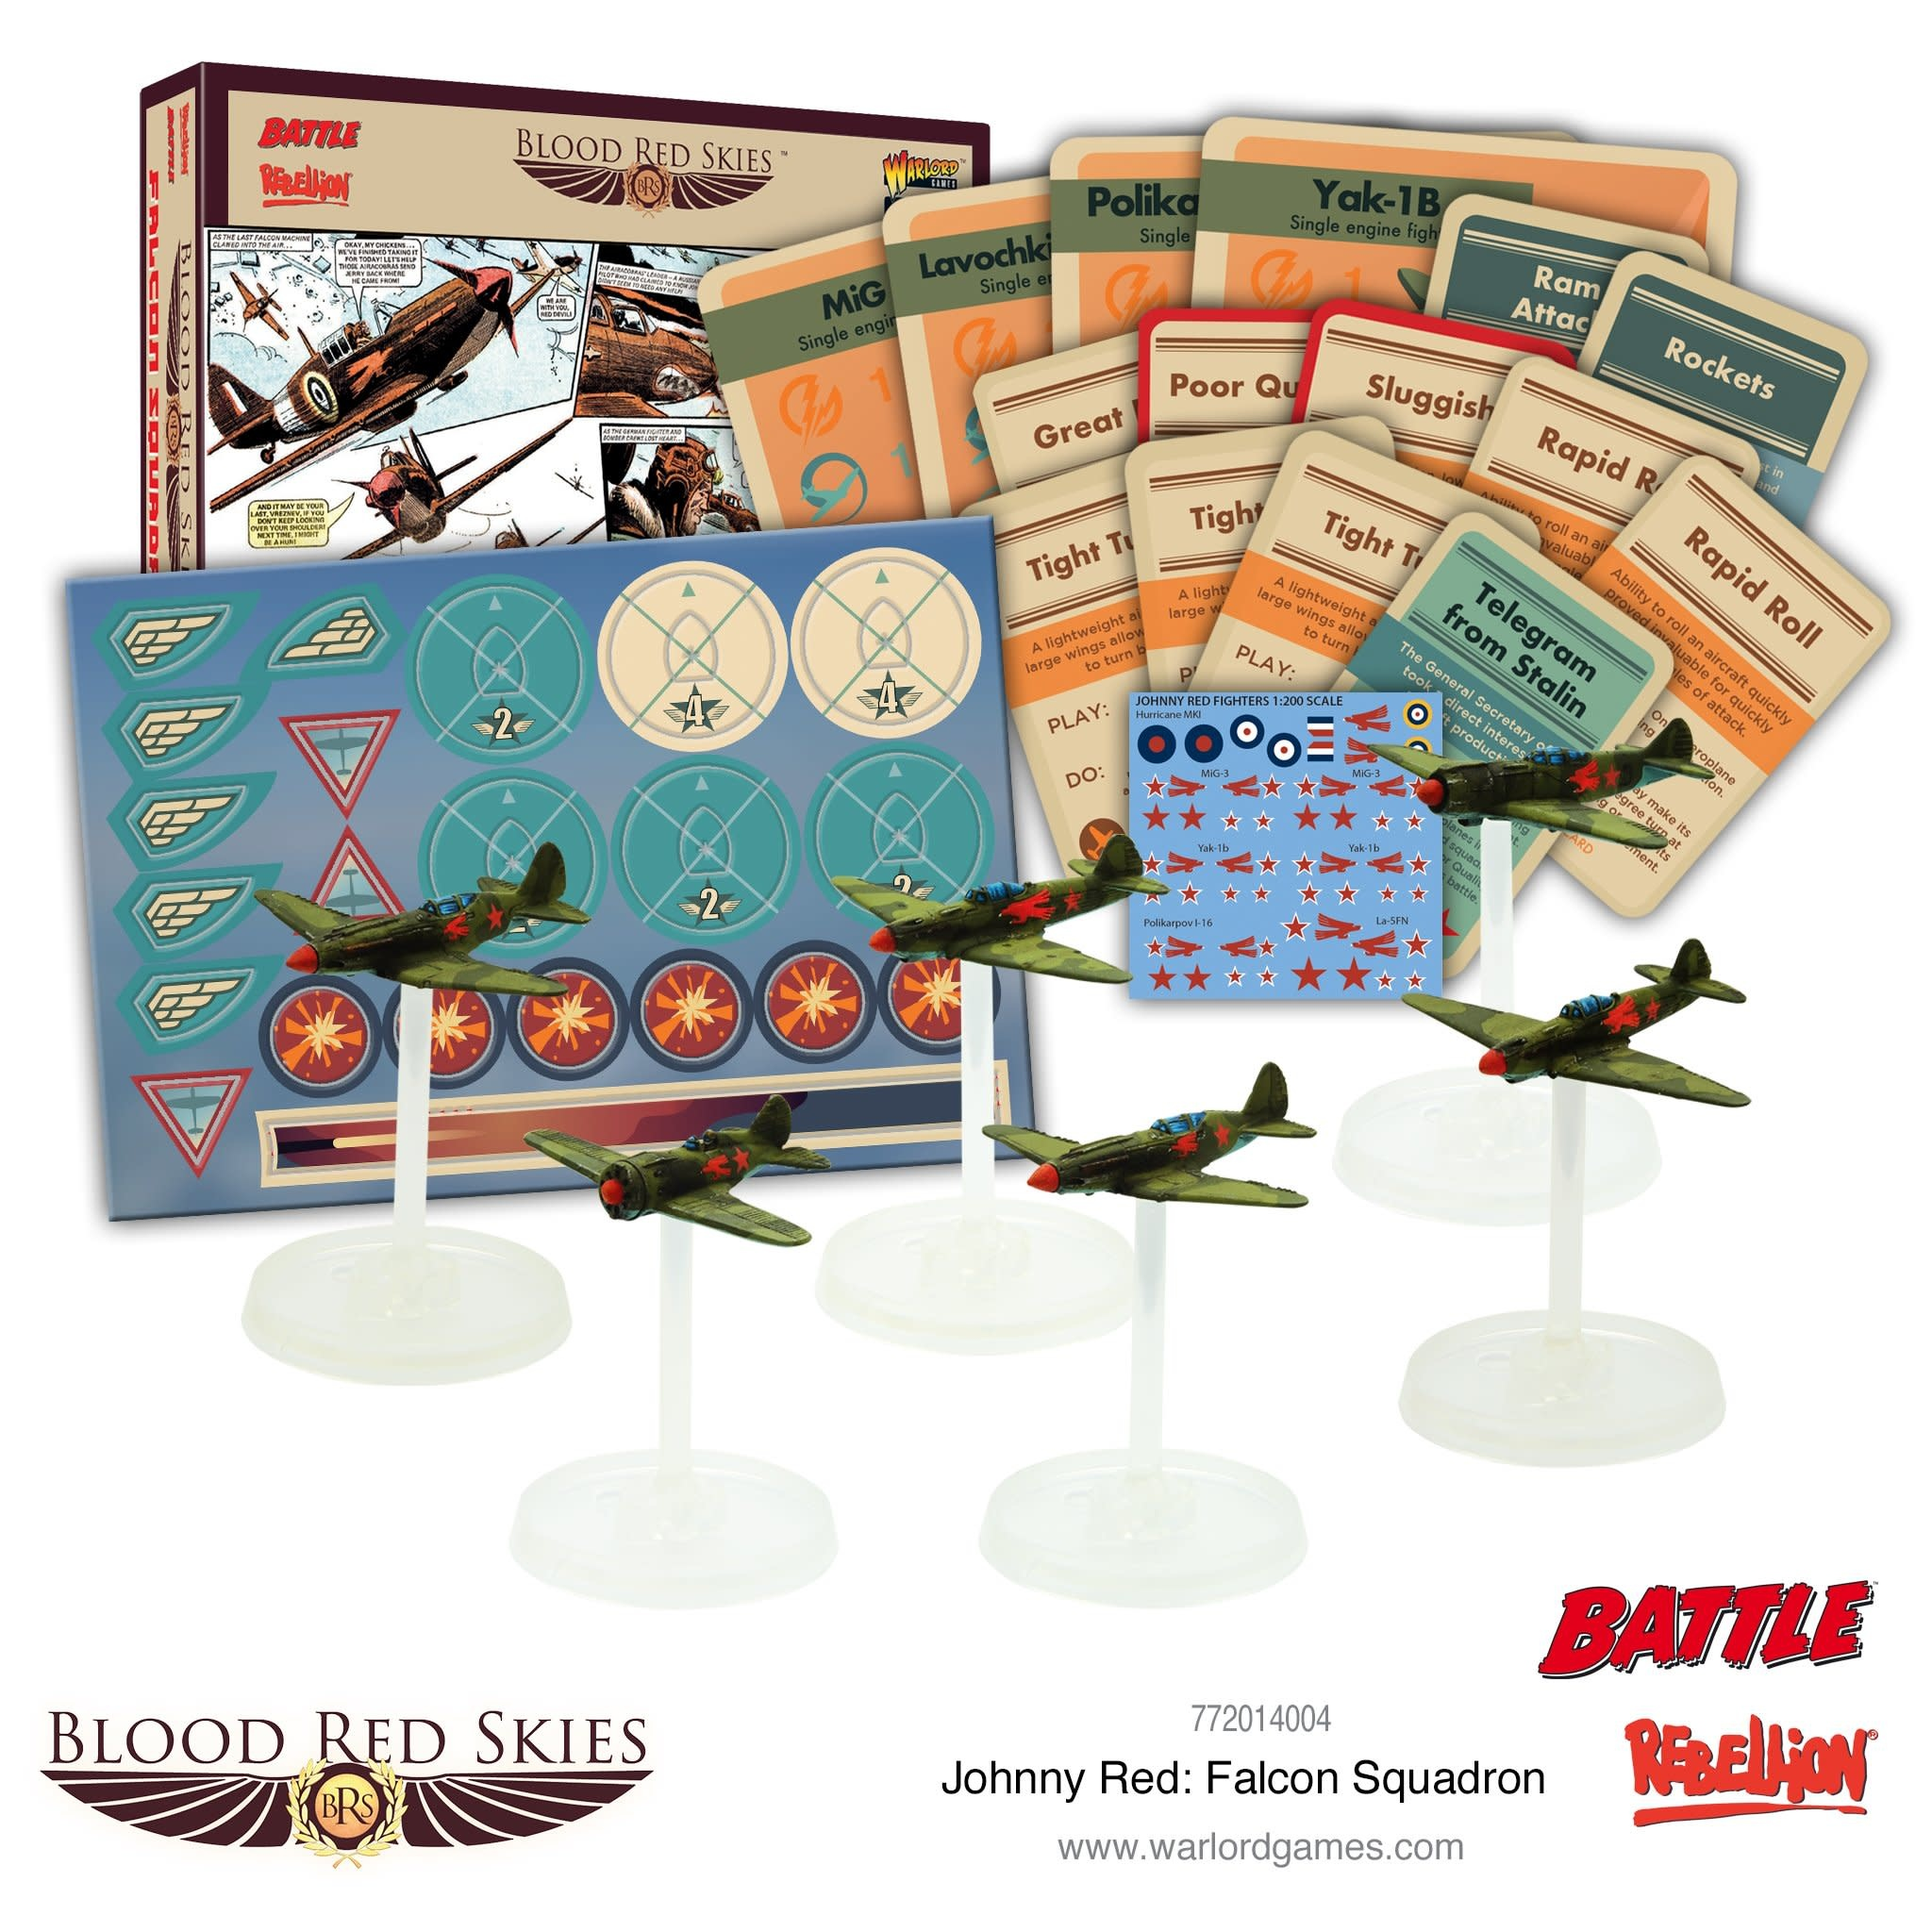 Warlord games Blood Red Skies: British, Johnny Red Falcon Squadron